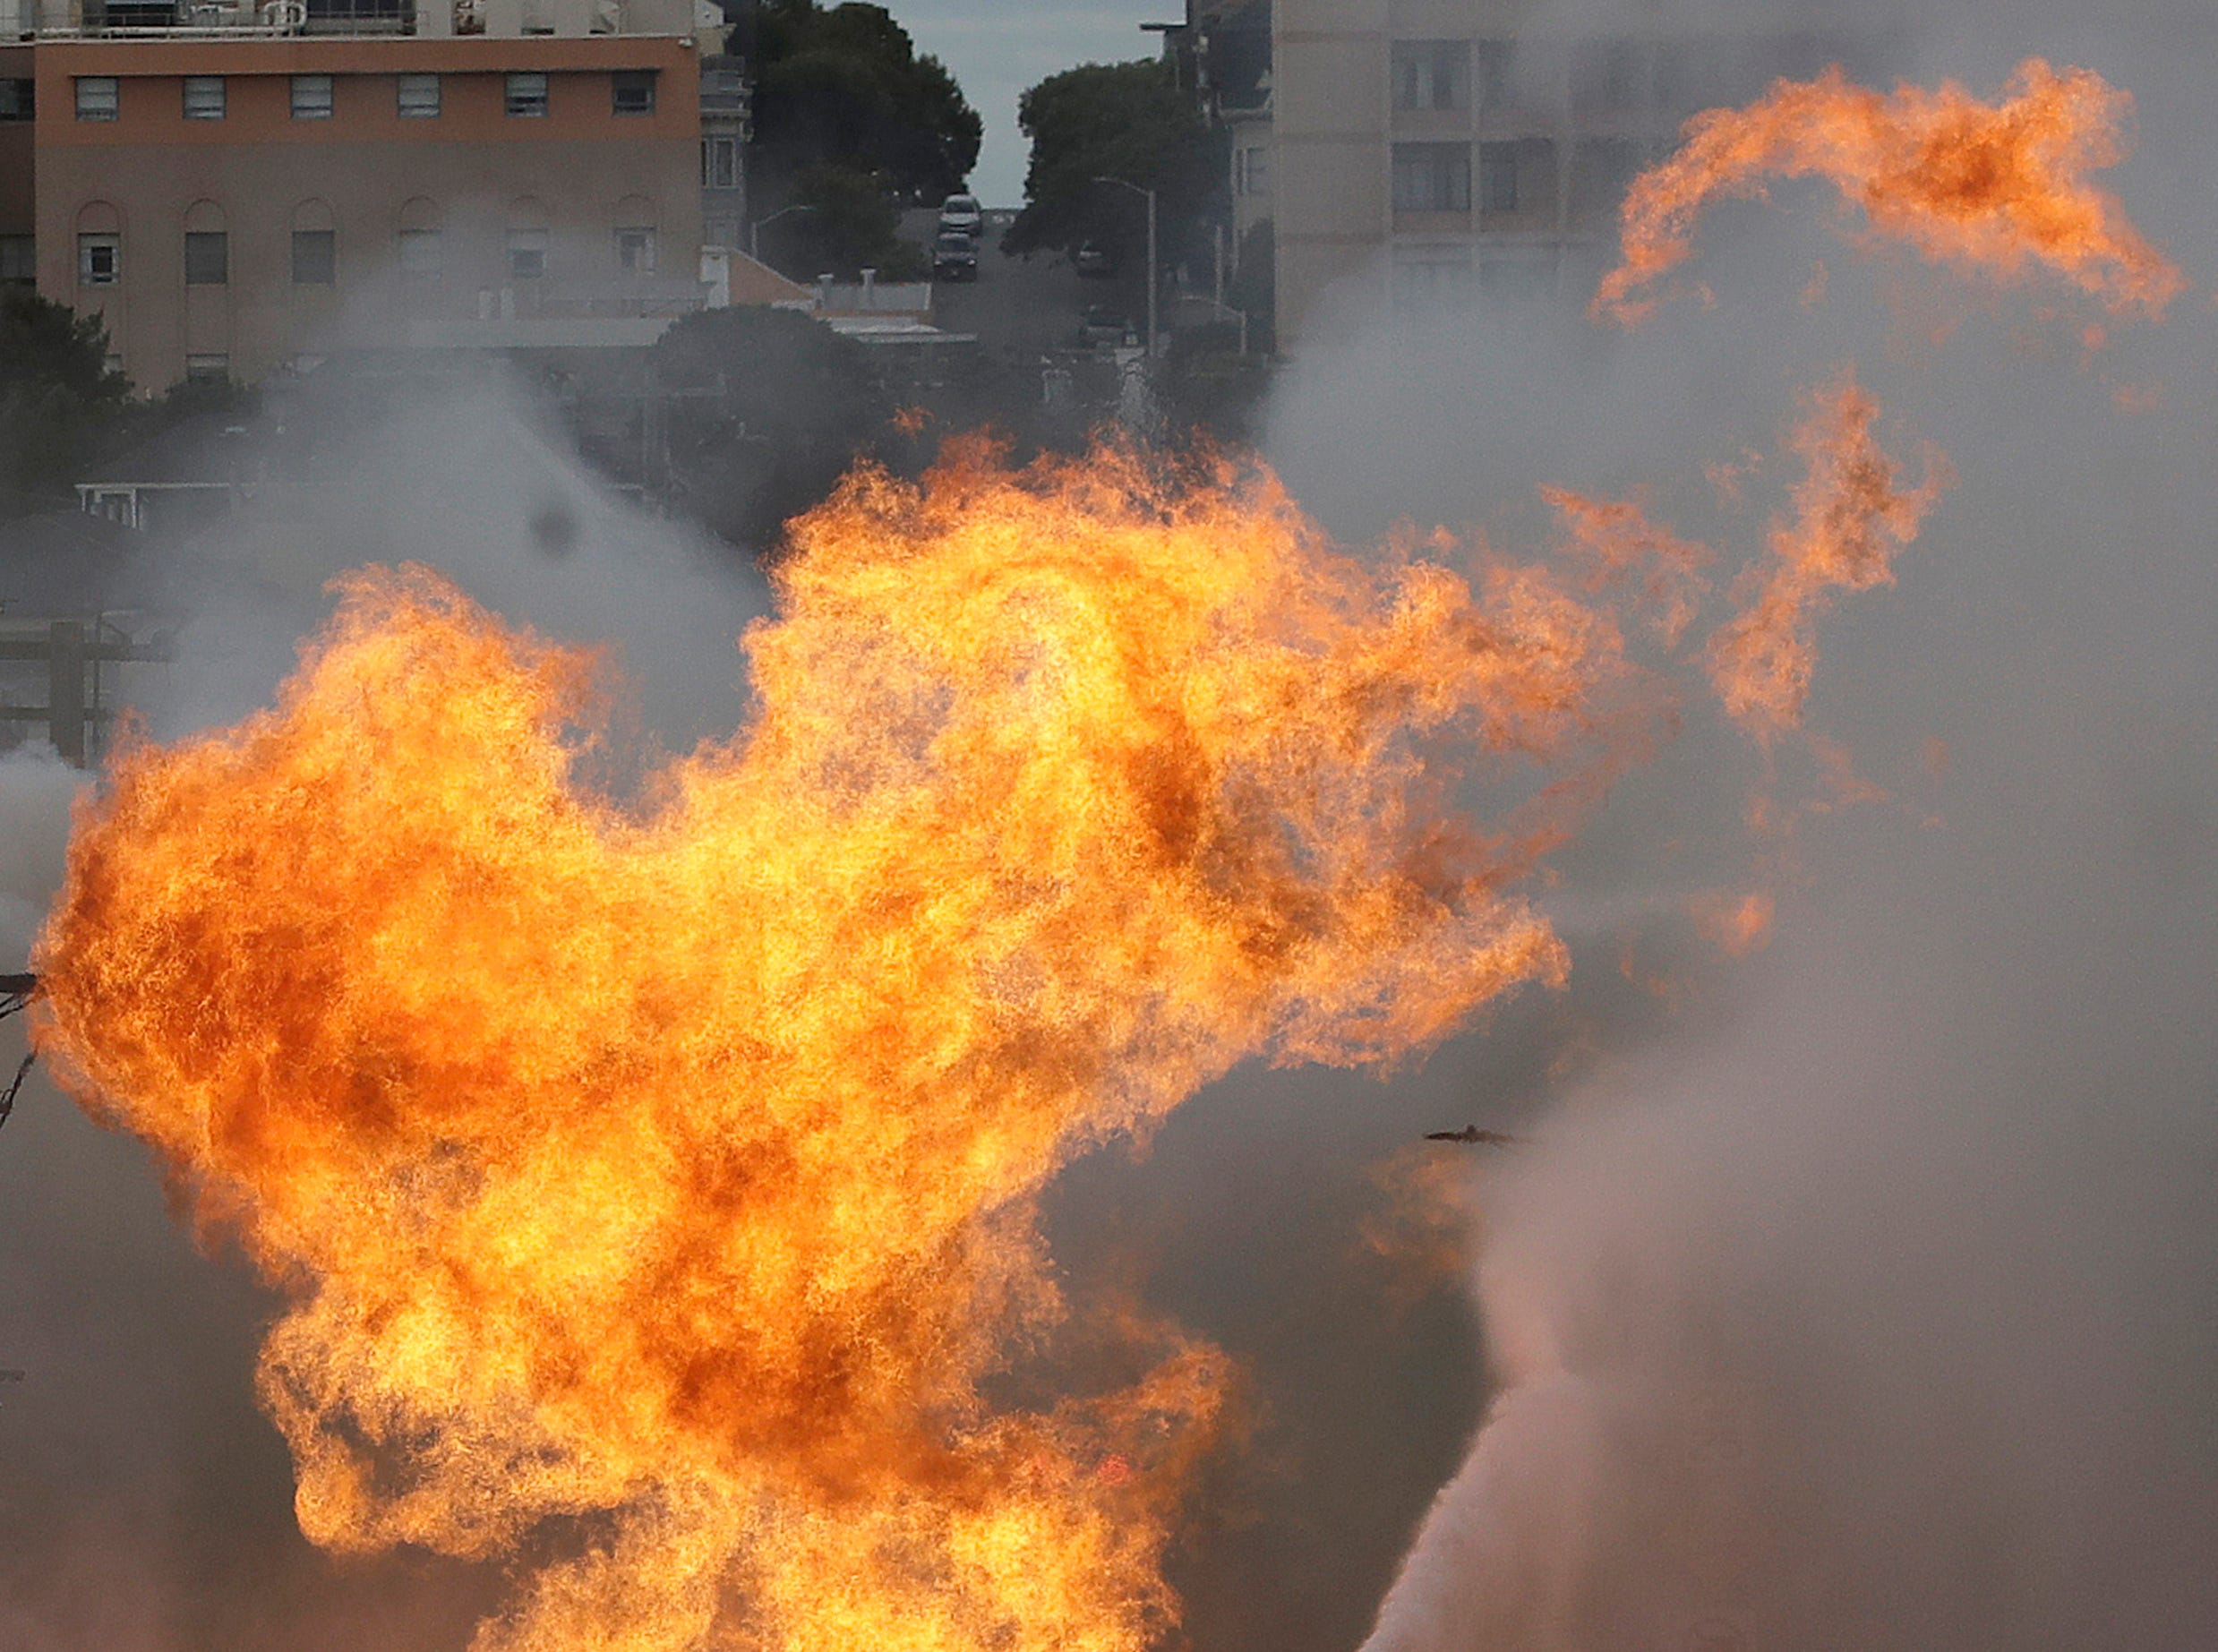 San Francisco firefighters battle a fire on Geary Boulevard in San Francisco, Wednesday, Feb. 6, 2019. A gas explosion in a San Francisco neighborhood shot flames high into the air Wednesday and was burning several buildings as utility crews scrambled to shut off the flow of gas. Construction workers cut a natural gas line, San Francisco Fire Chief Joanne Hayes-White said.